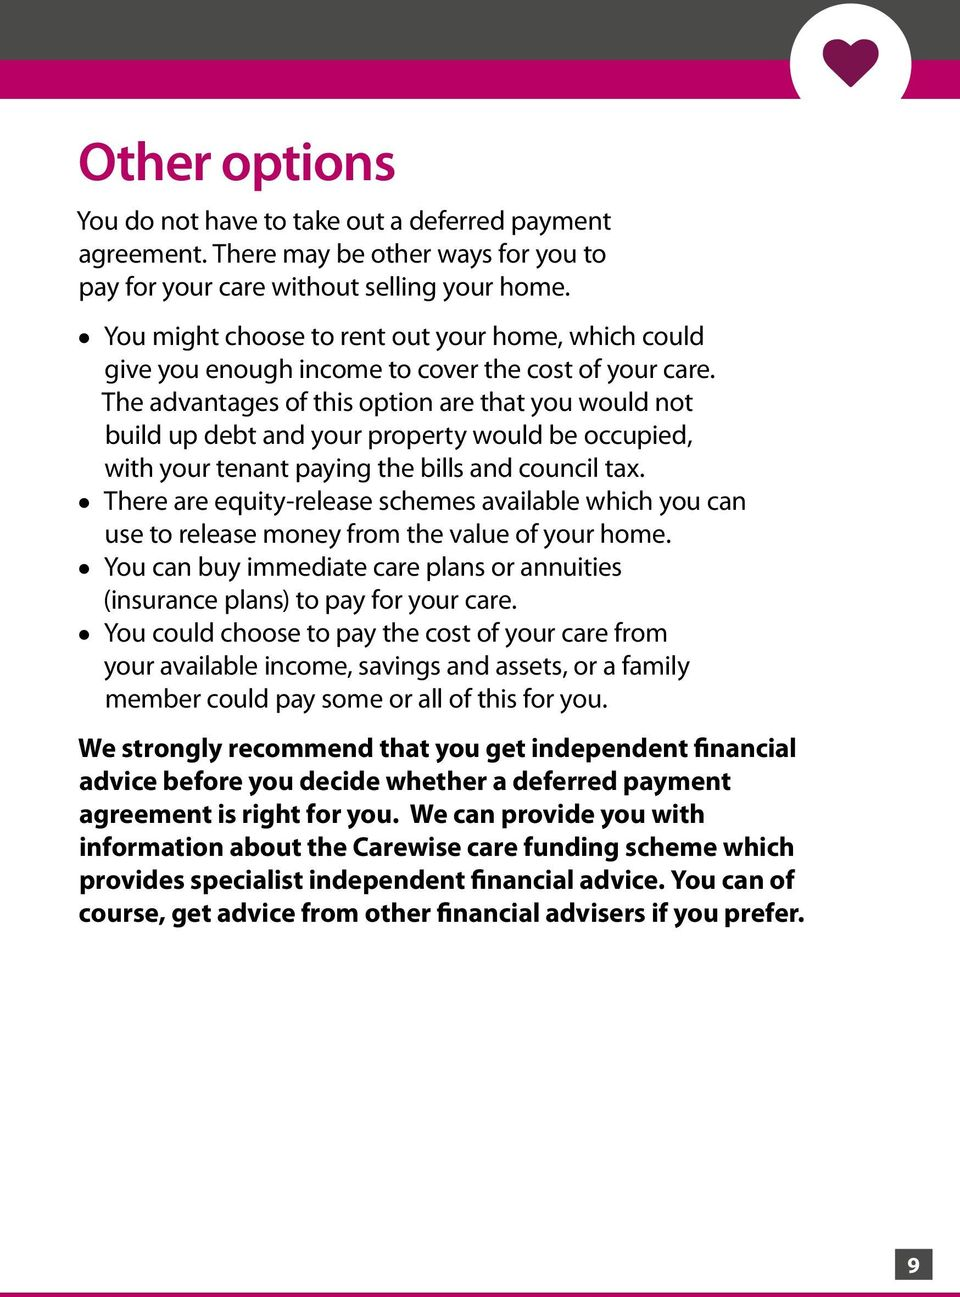 The advantages of this option are that you would not build up debt and your property would be occupied, with your tenant paying the bills and council tax.